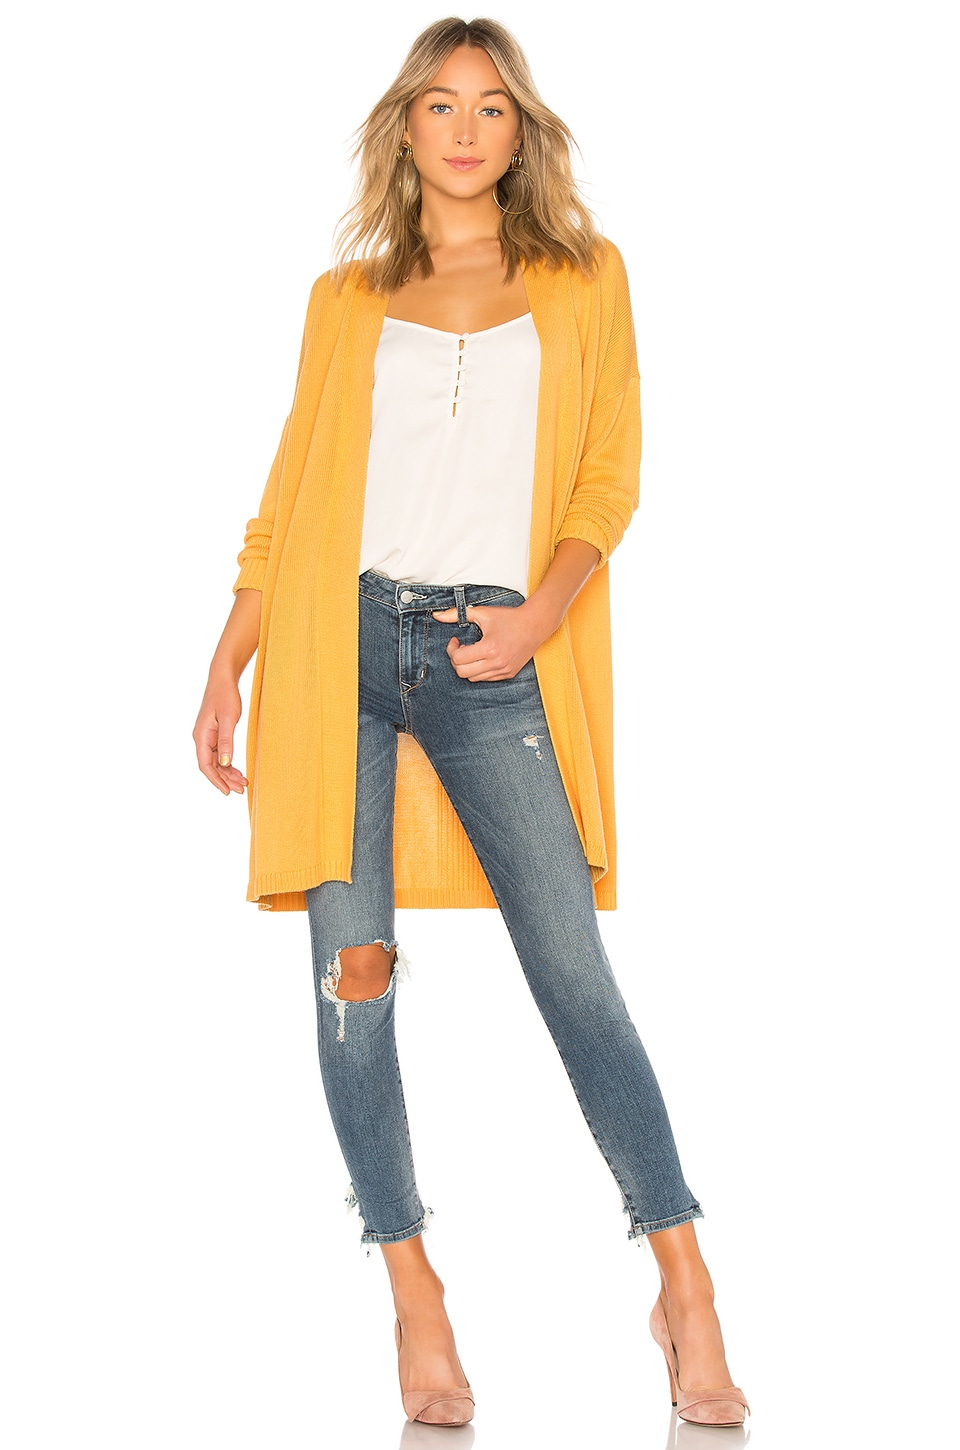 Lovers + Friends Rachel Cardigan in Marigold